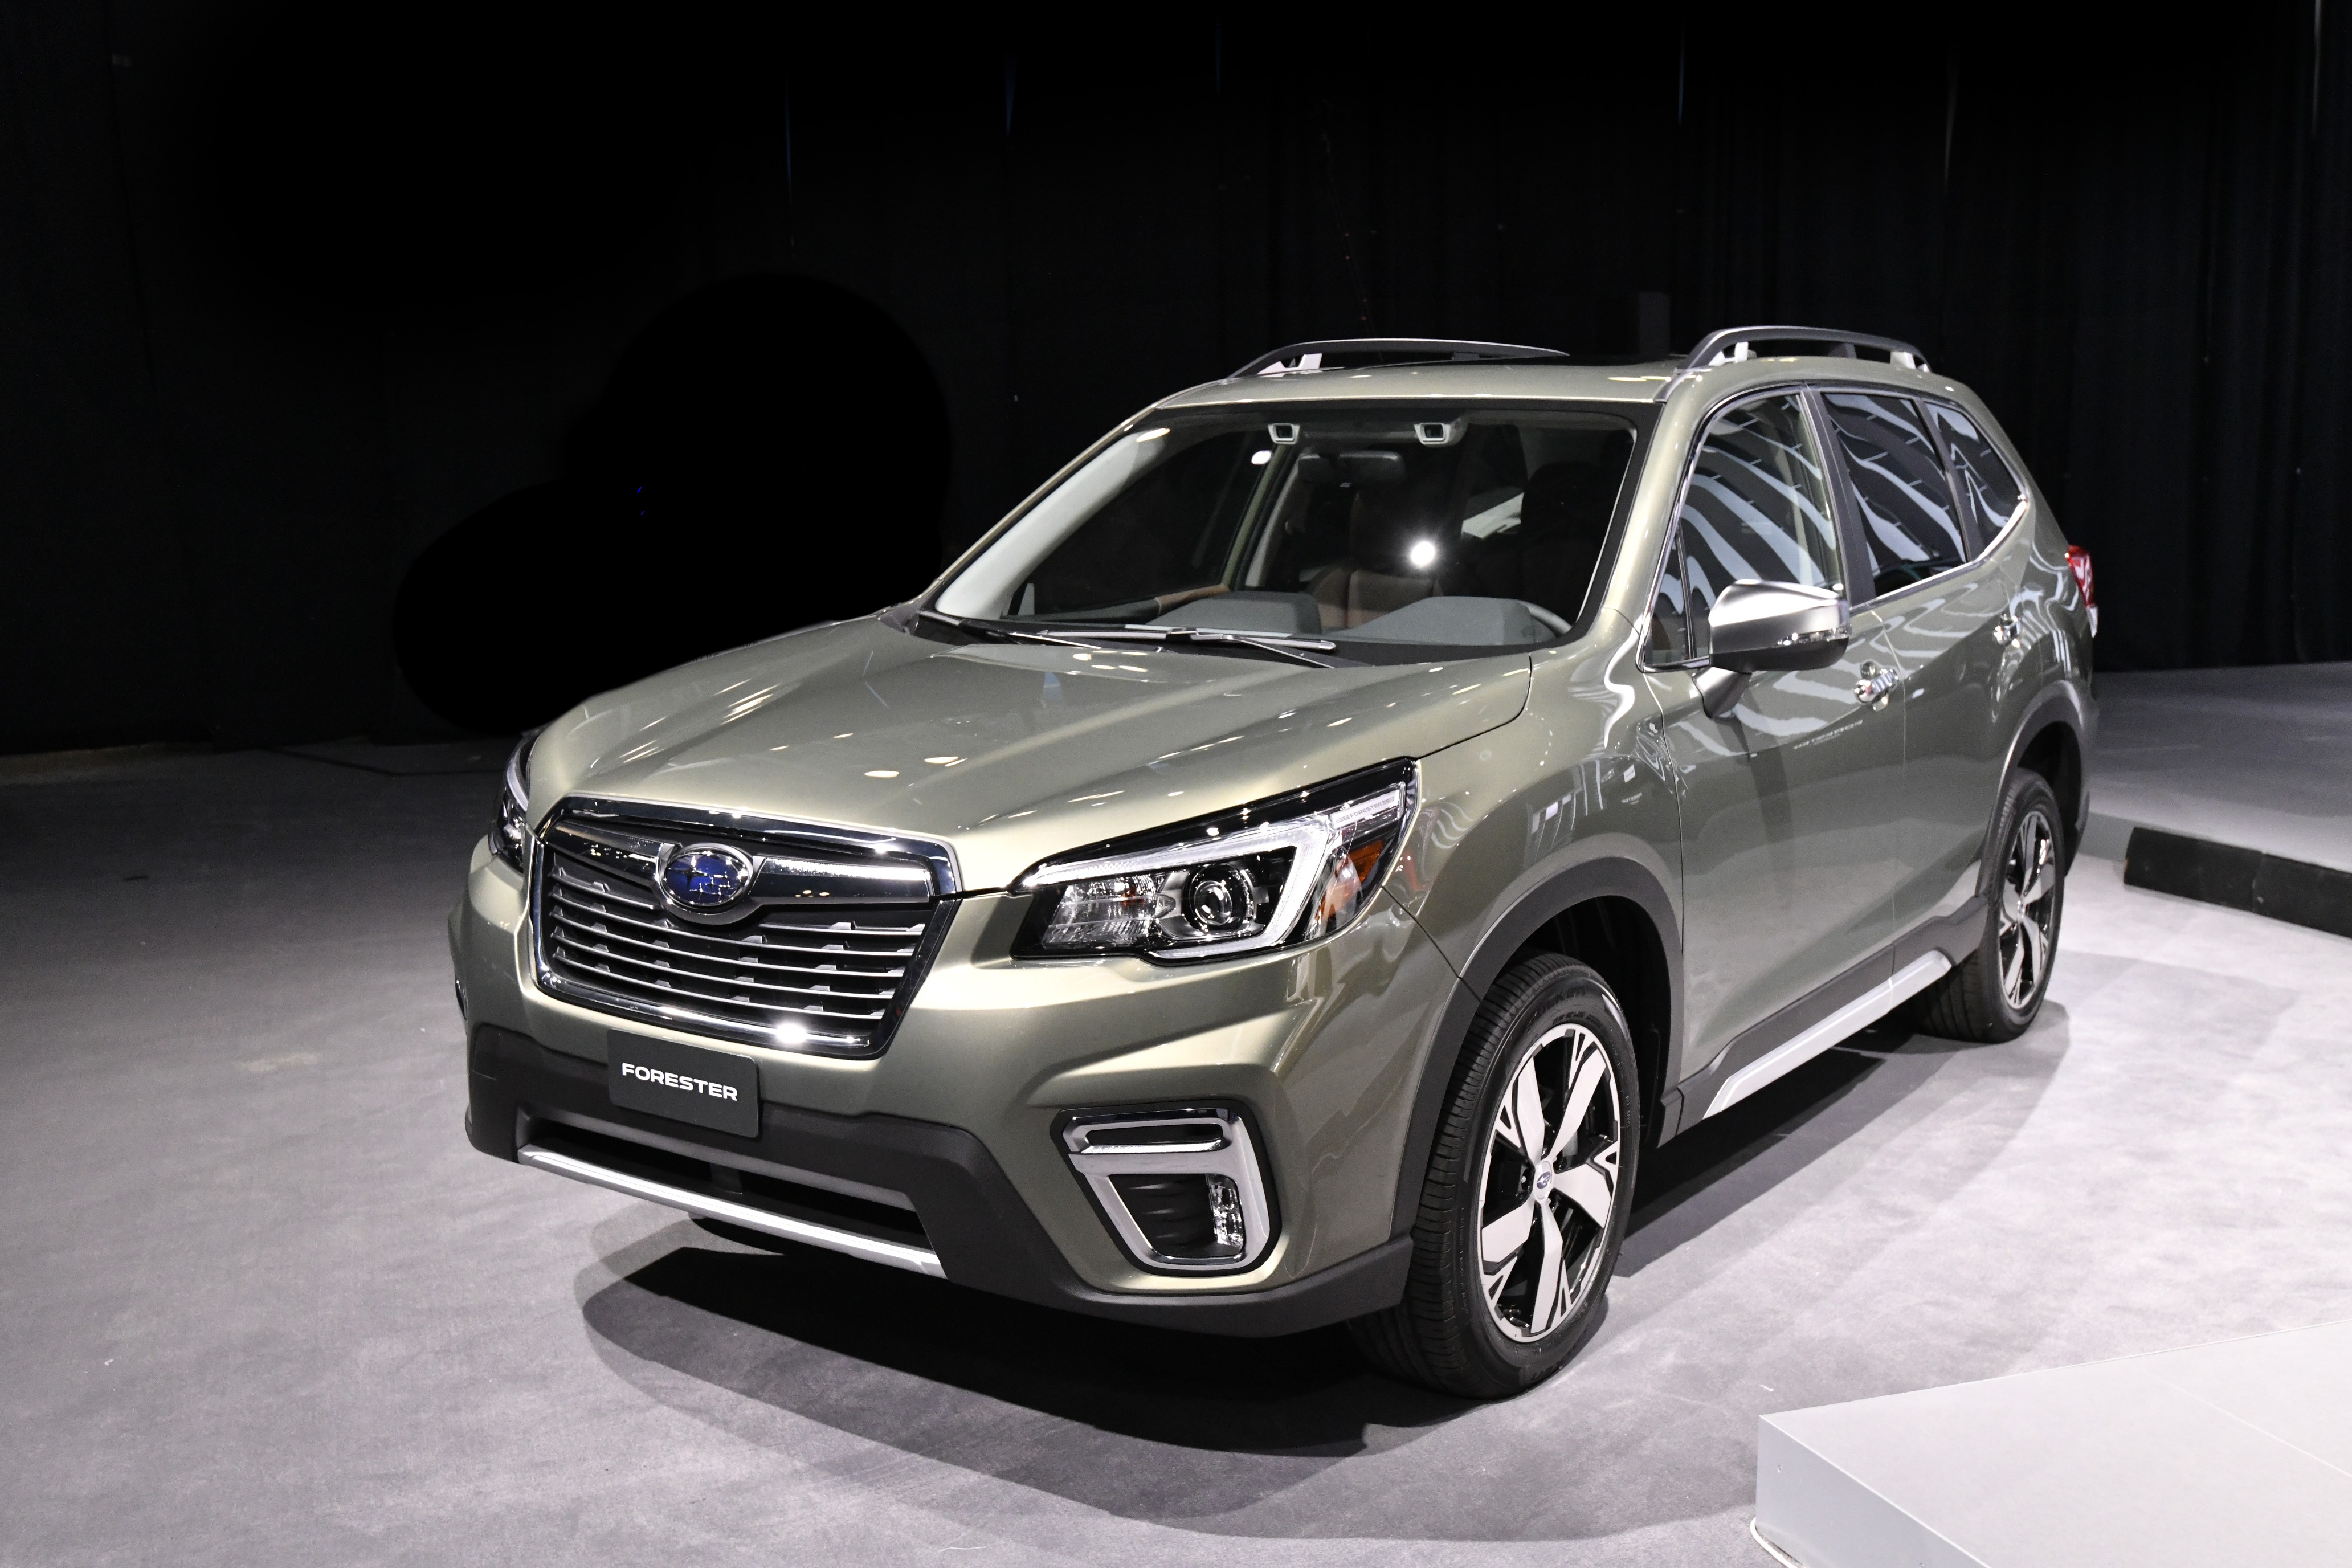 Forrester Subaru An All New 2019 Subaru Forester To Be Unveiled In